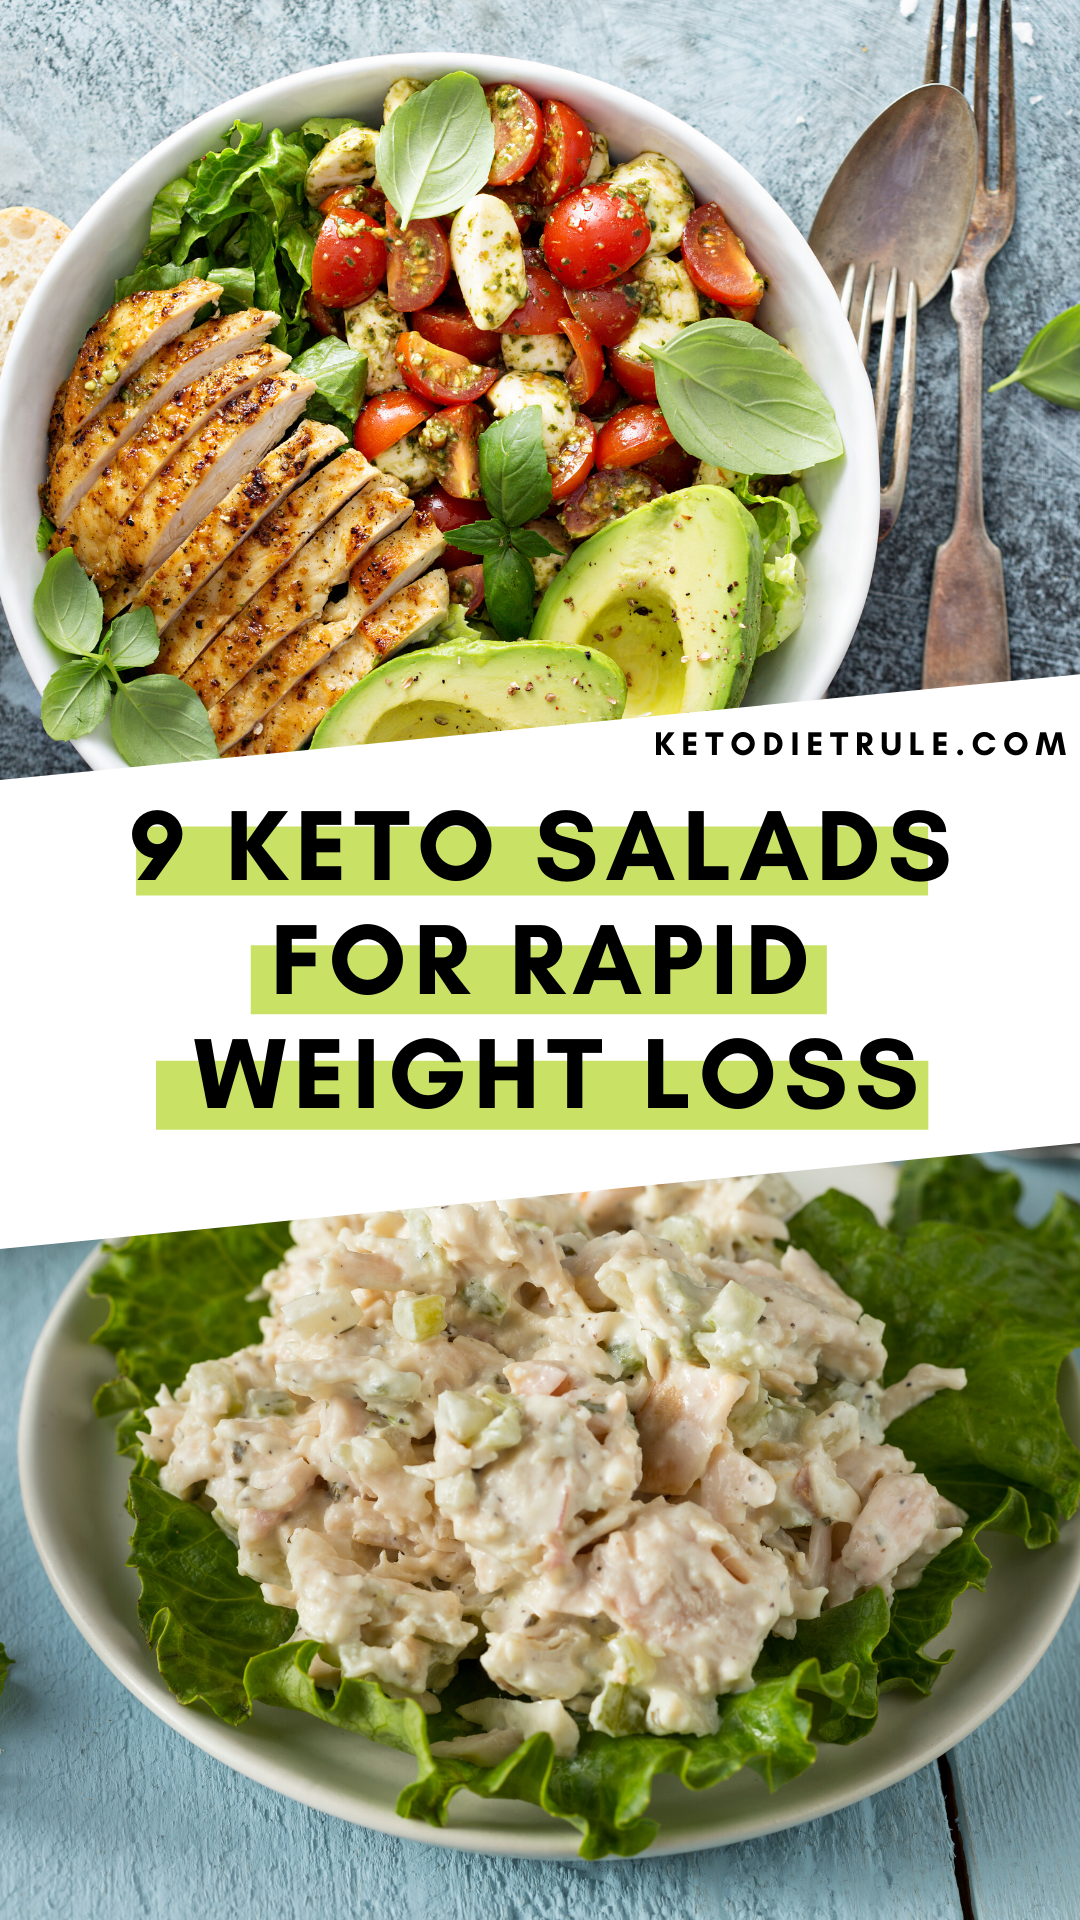 9 Best Keto Diet Salad Recipes for Rapid Weight Loss